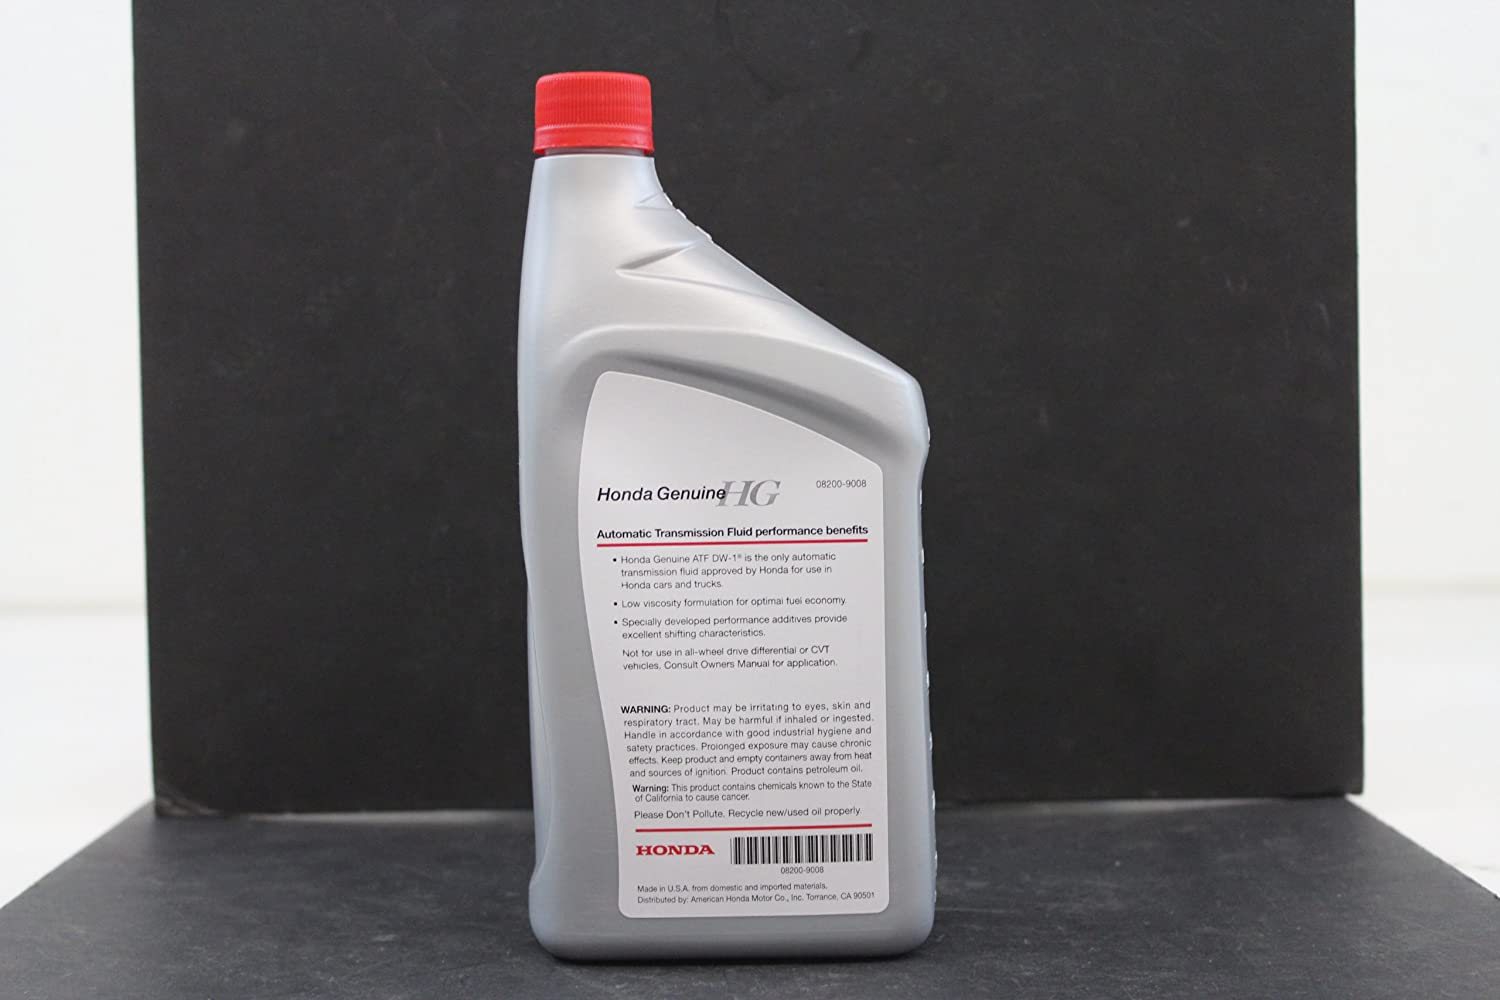 Amazing Amazon.com: Honda Genuine Fluid 08200 9008 ATF DW1 Automatic Transmission  Fluid   1 Quart: Automotive